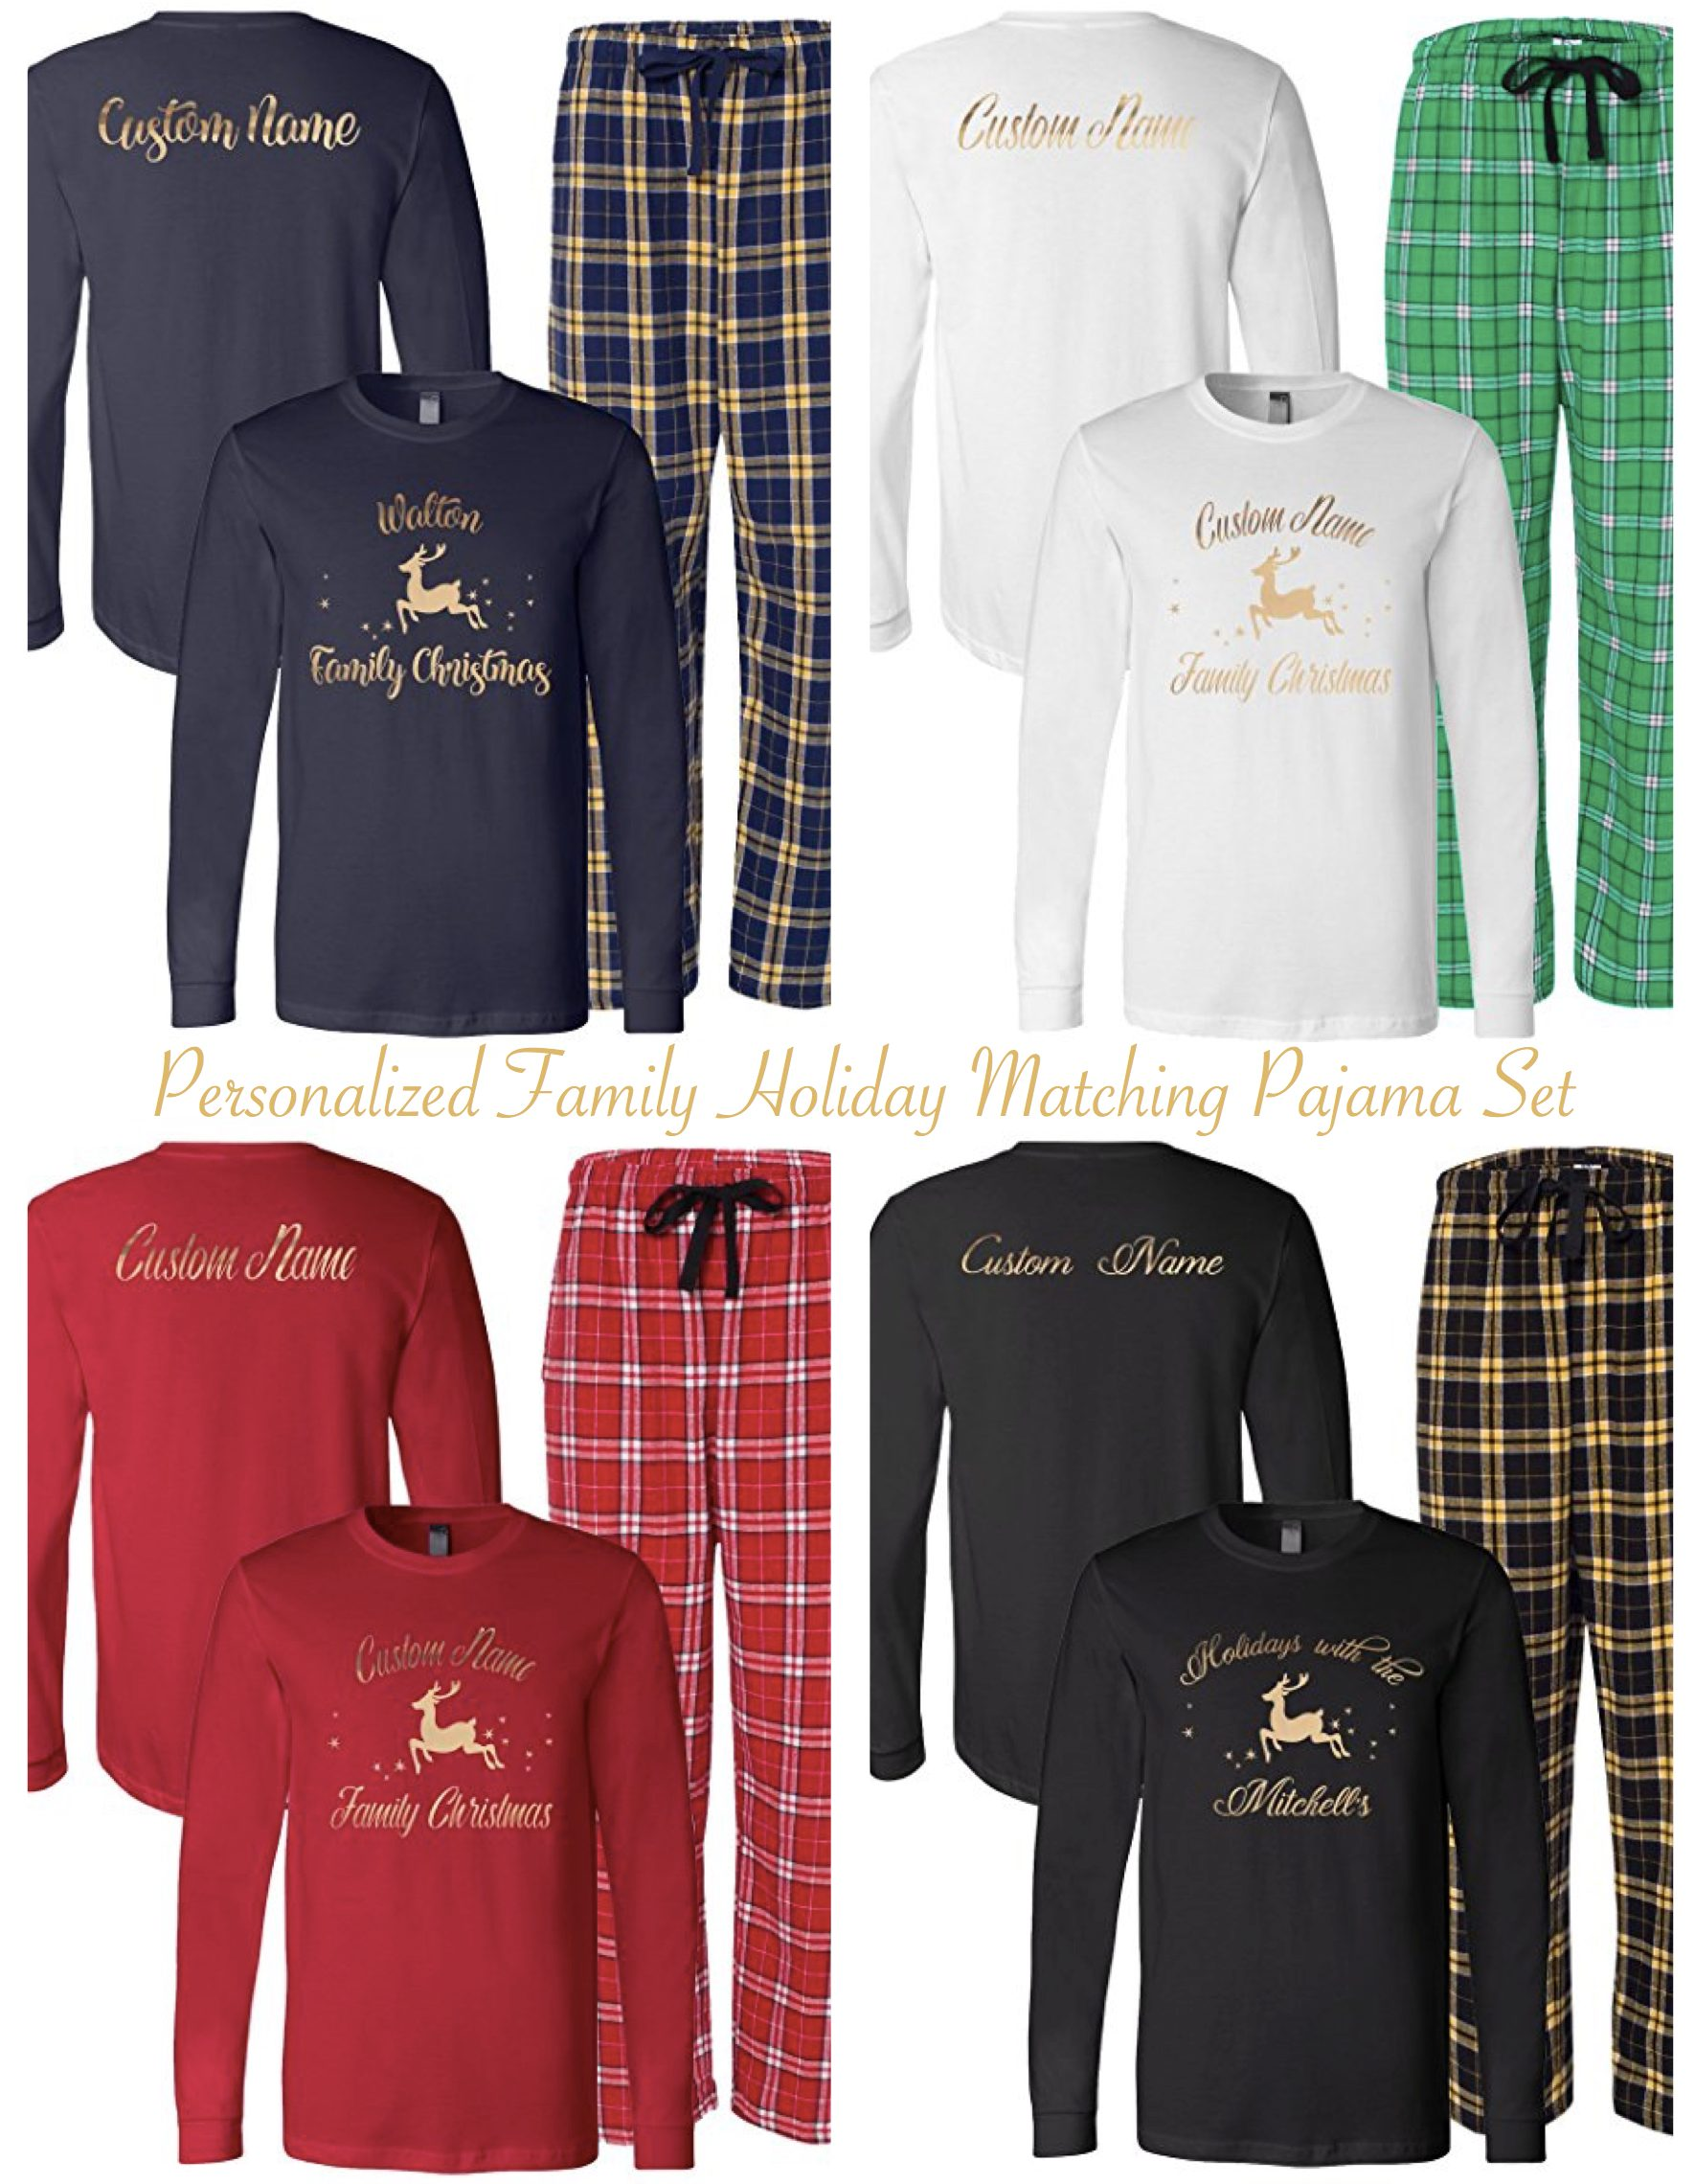 Personalized Family Matching Holiday Pajama Sets